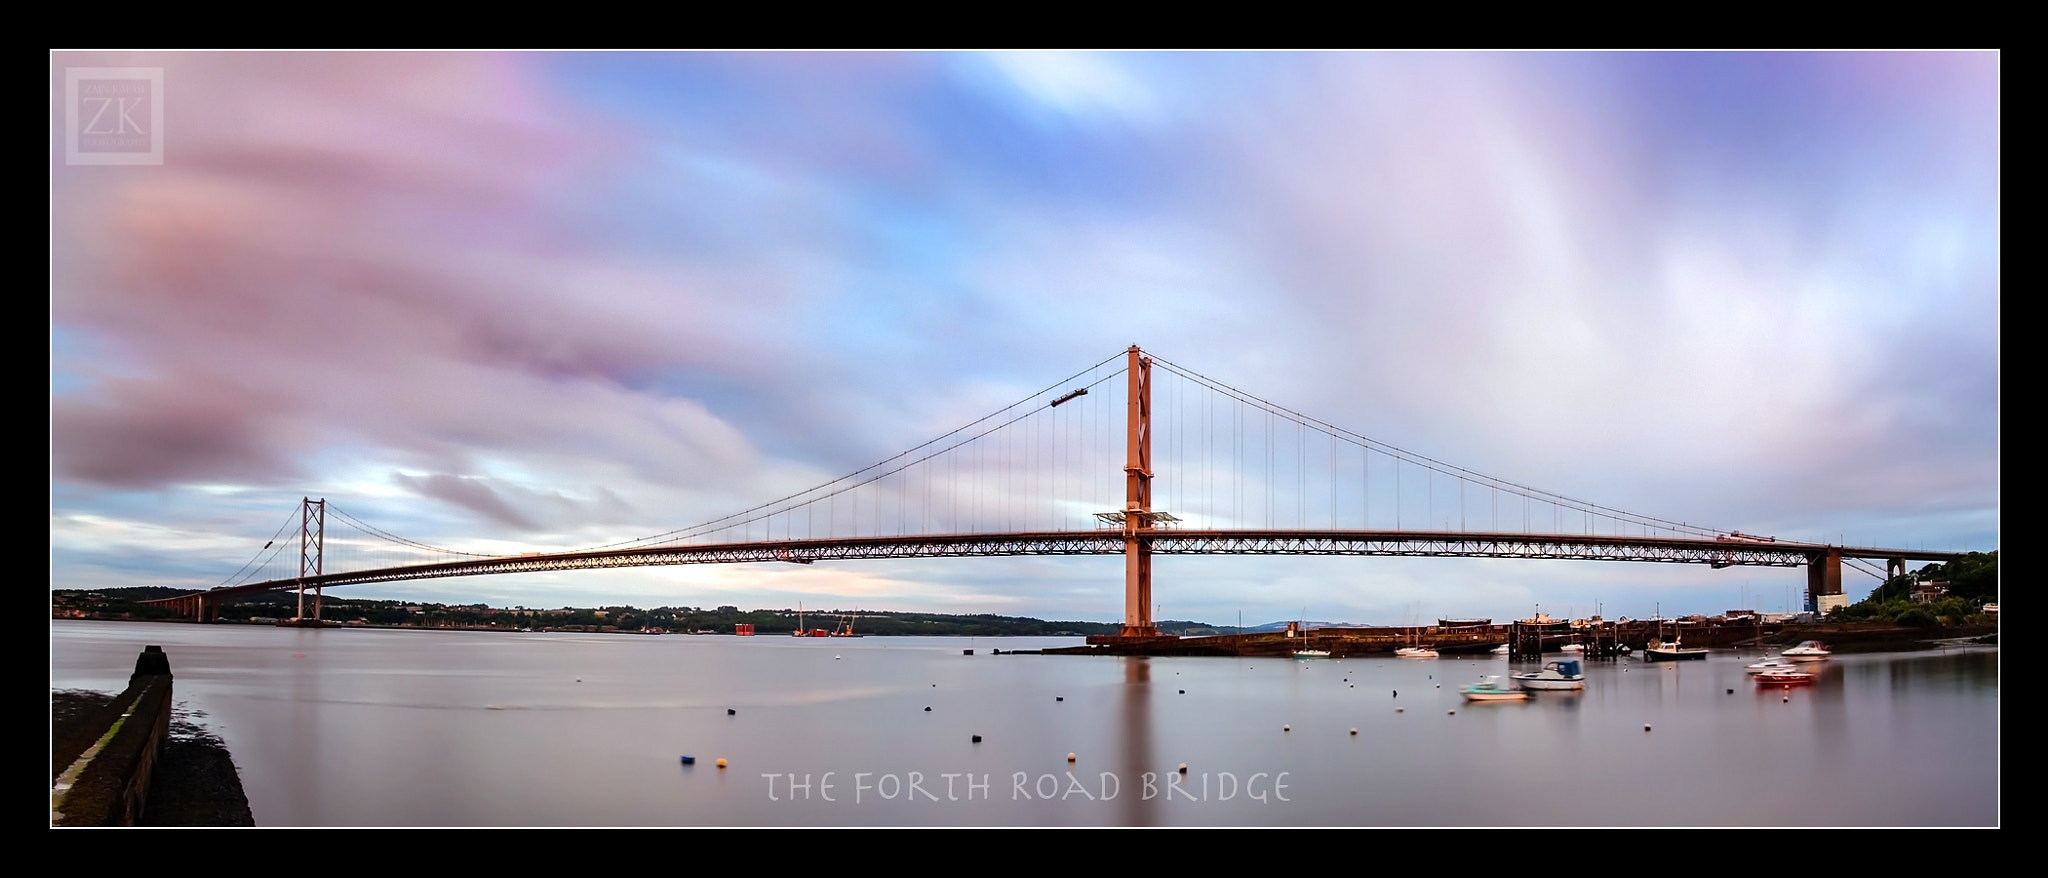 Photograph The Forth Road Bridge by Zain Kapasi on 500px